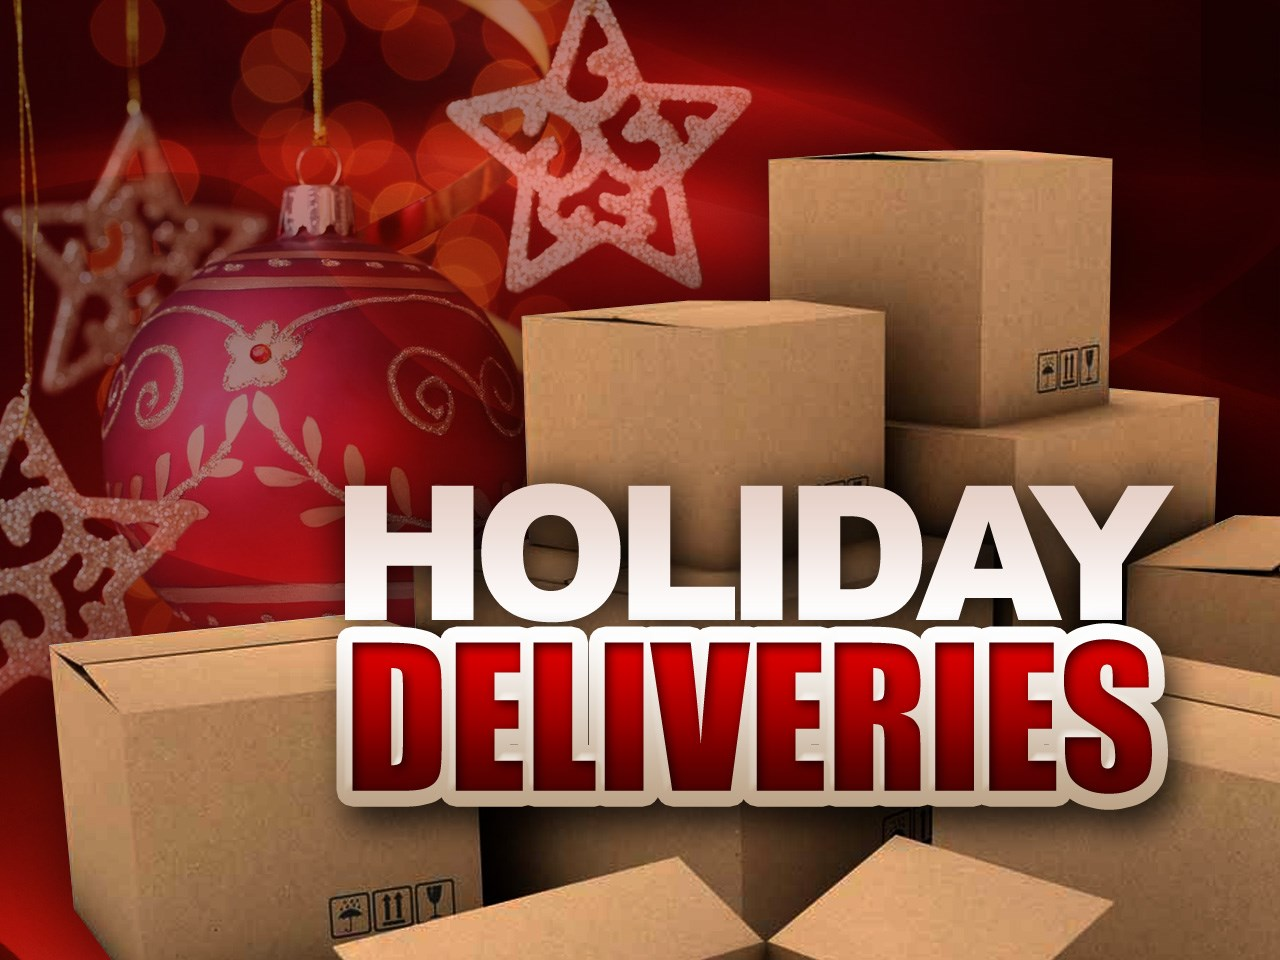 Are Post Offices Open On Christmas Eve.Post Offices To Be Open Christmas Eve New Year S Eve